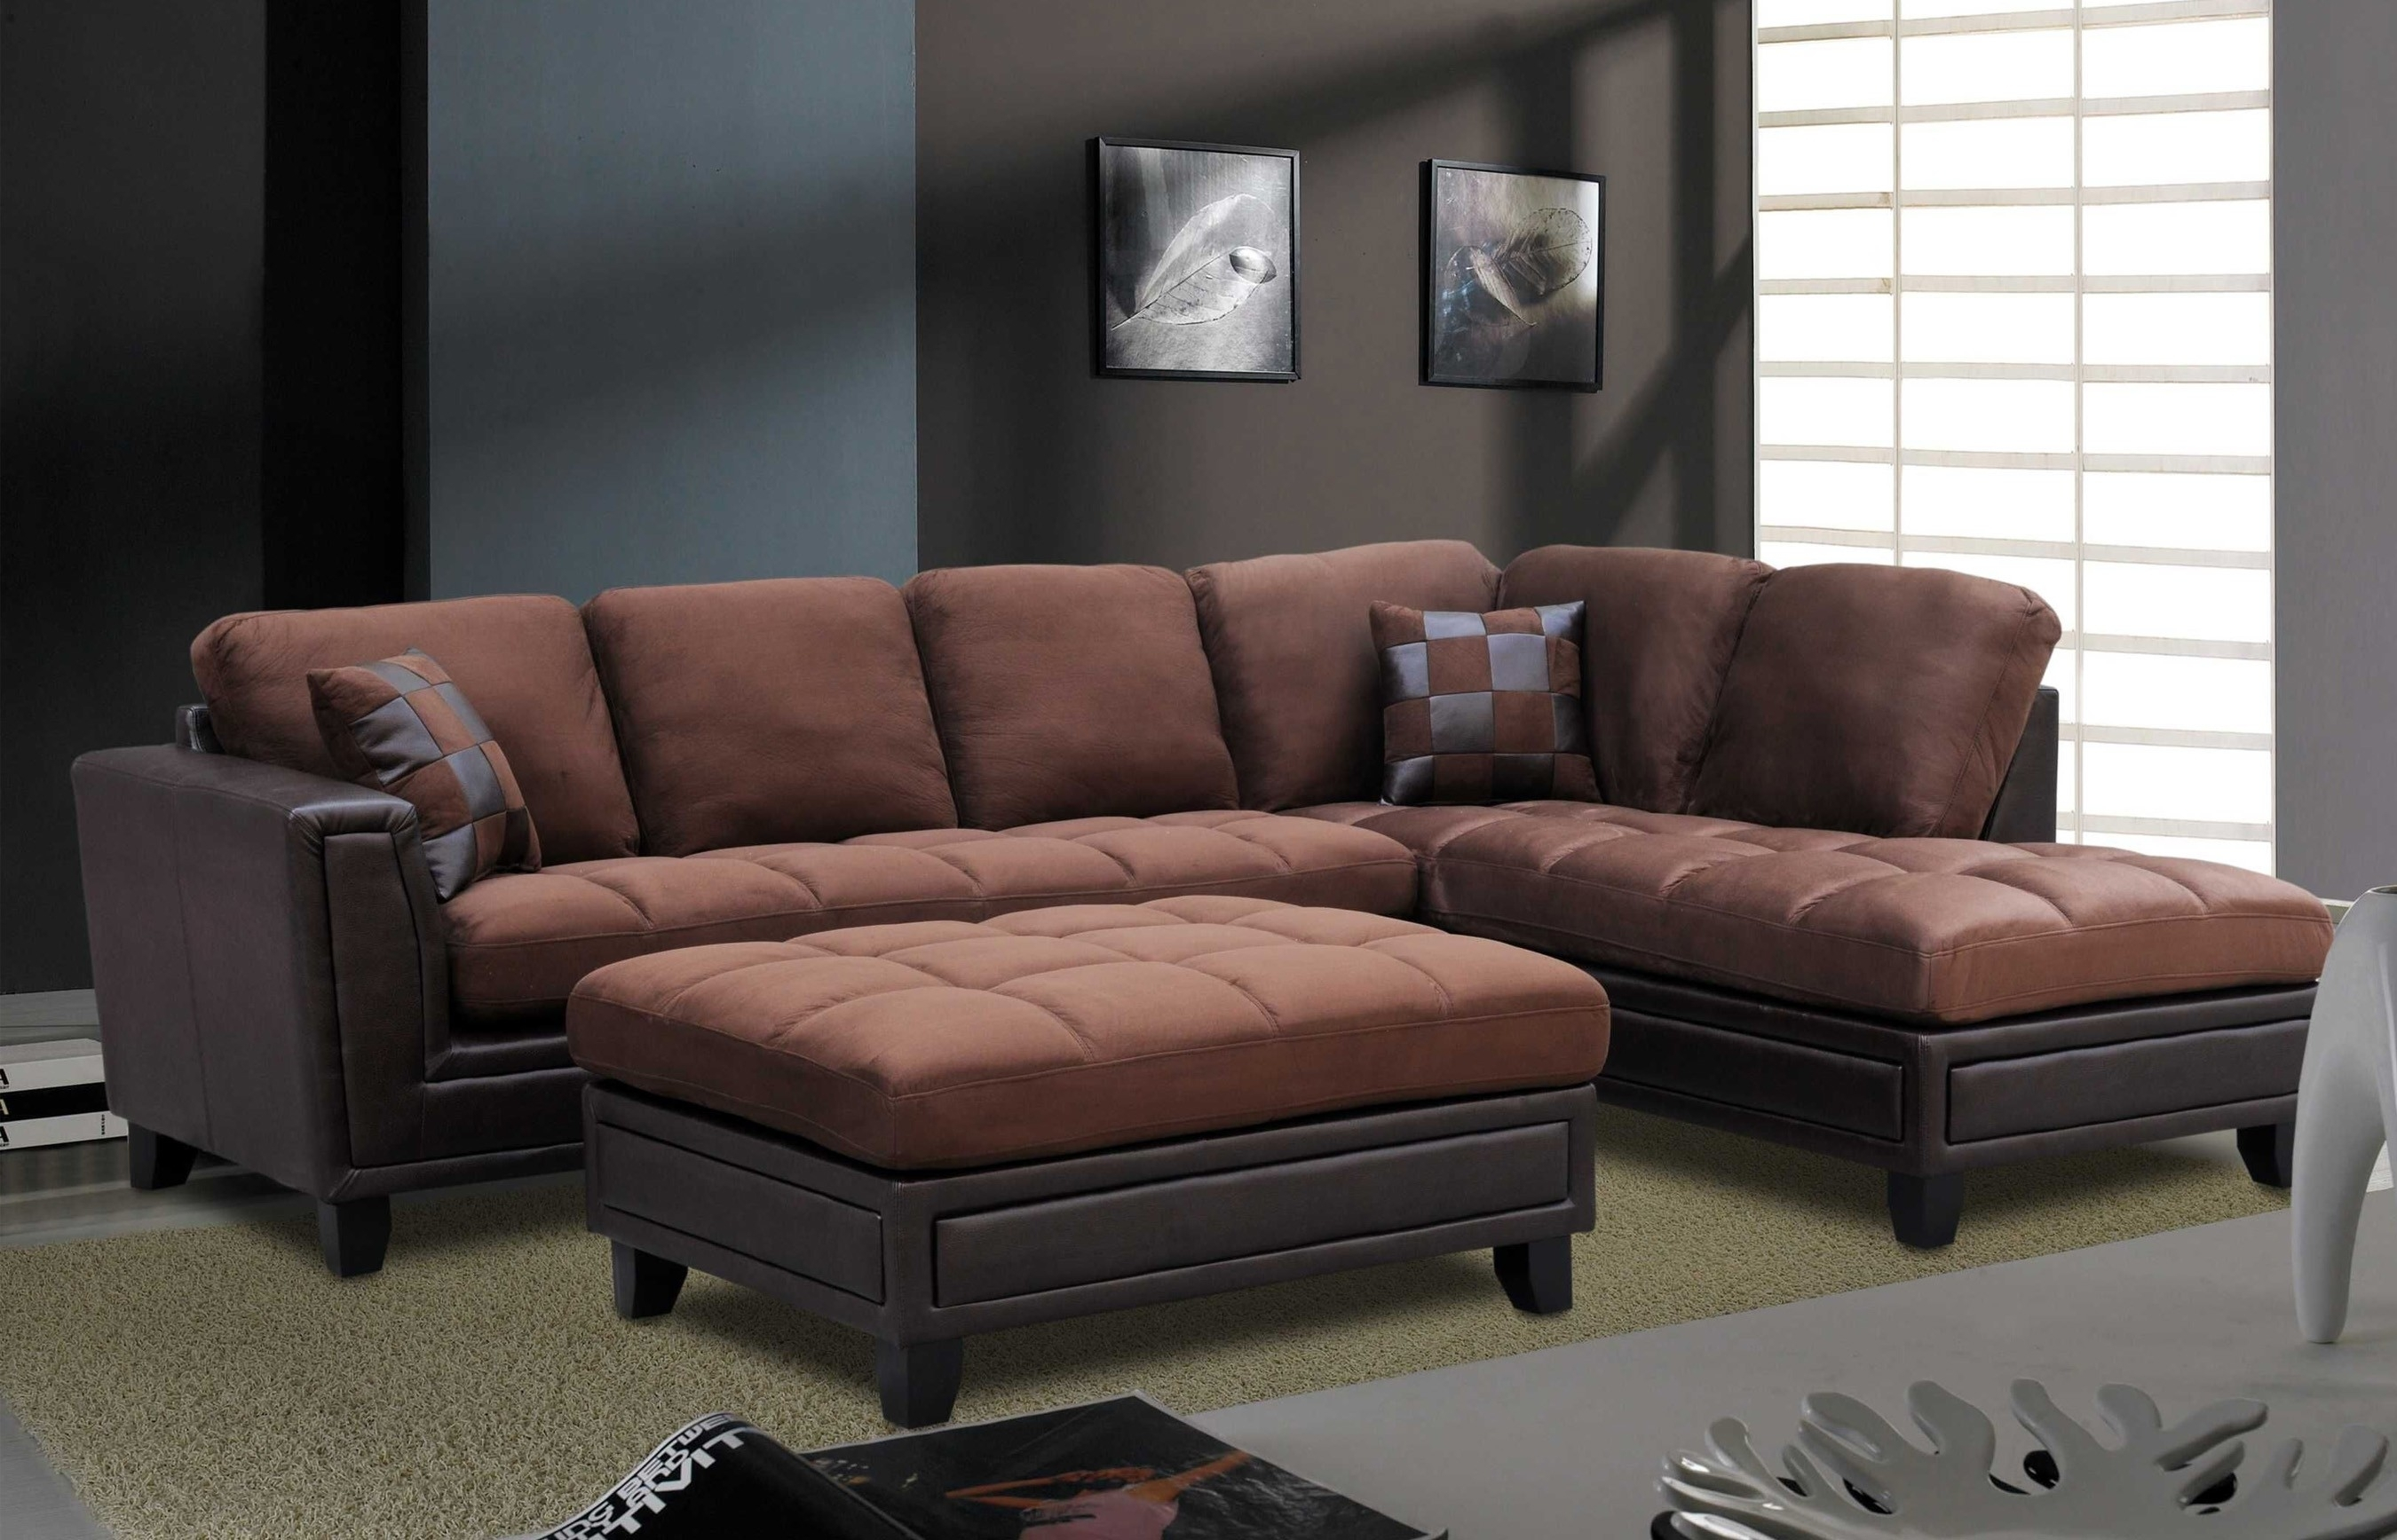 Microfiber Sectional With Free Ottoman - Chocolate Brown | Orange throughout Orange County Ca Sectional Sofas (Image 8 of 10)